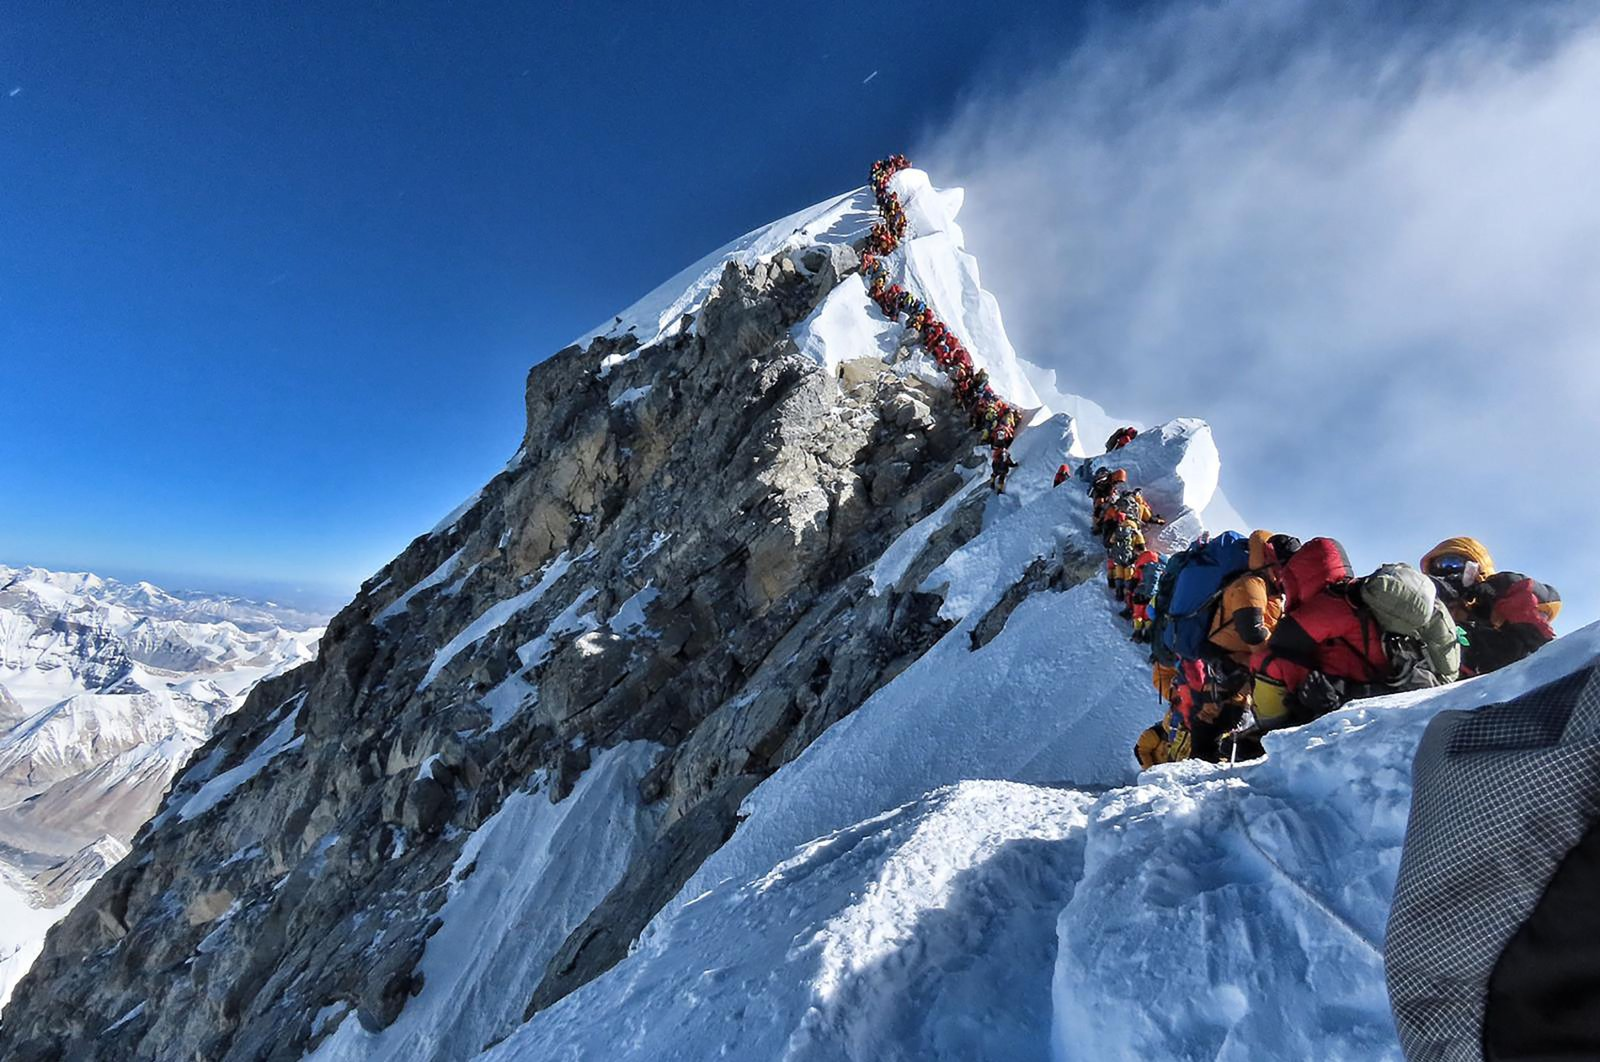 This handout photo taken on May 22, 2019 and released by climber Nirmal Purja's Project Possible expedition shows heavy traffic of mountain climbers lining up to stand at the summit of Mount Everest. (AFP Photo/Project Possible)